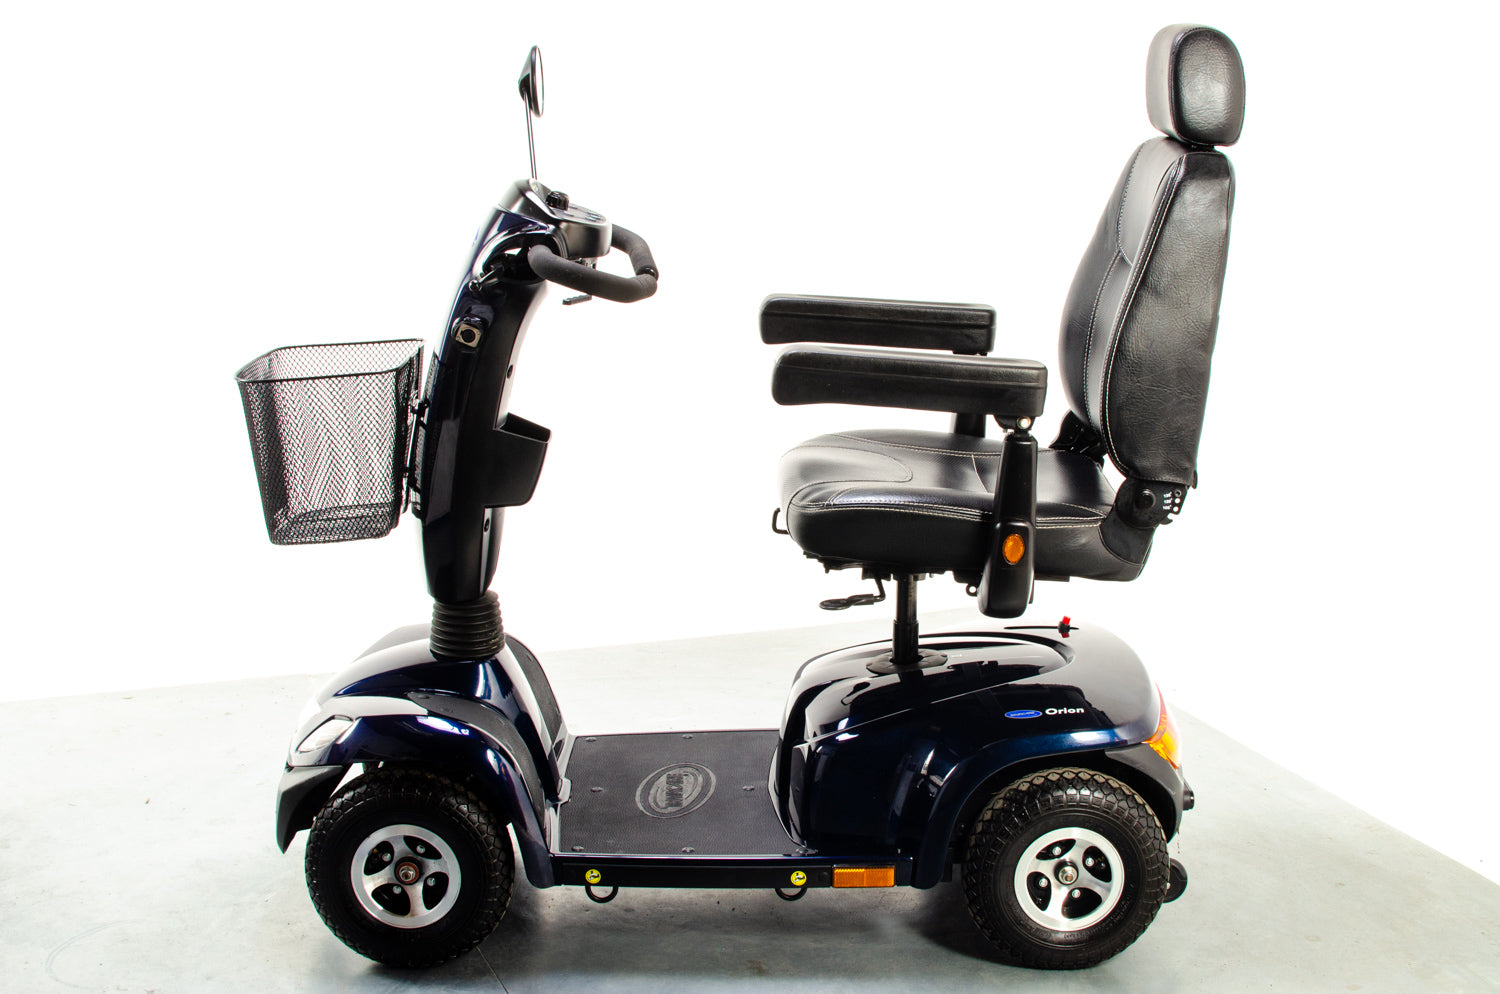 Invacare Orion Midsize Mobility Scooter 8mph Pavement Road Suspension Pneumatic